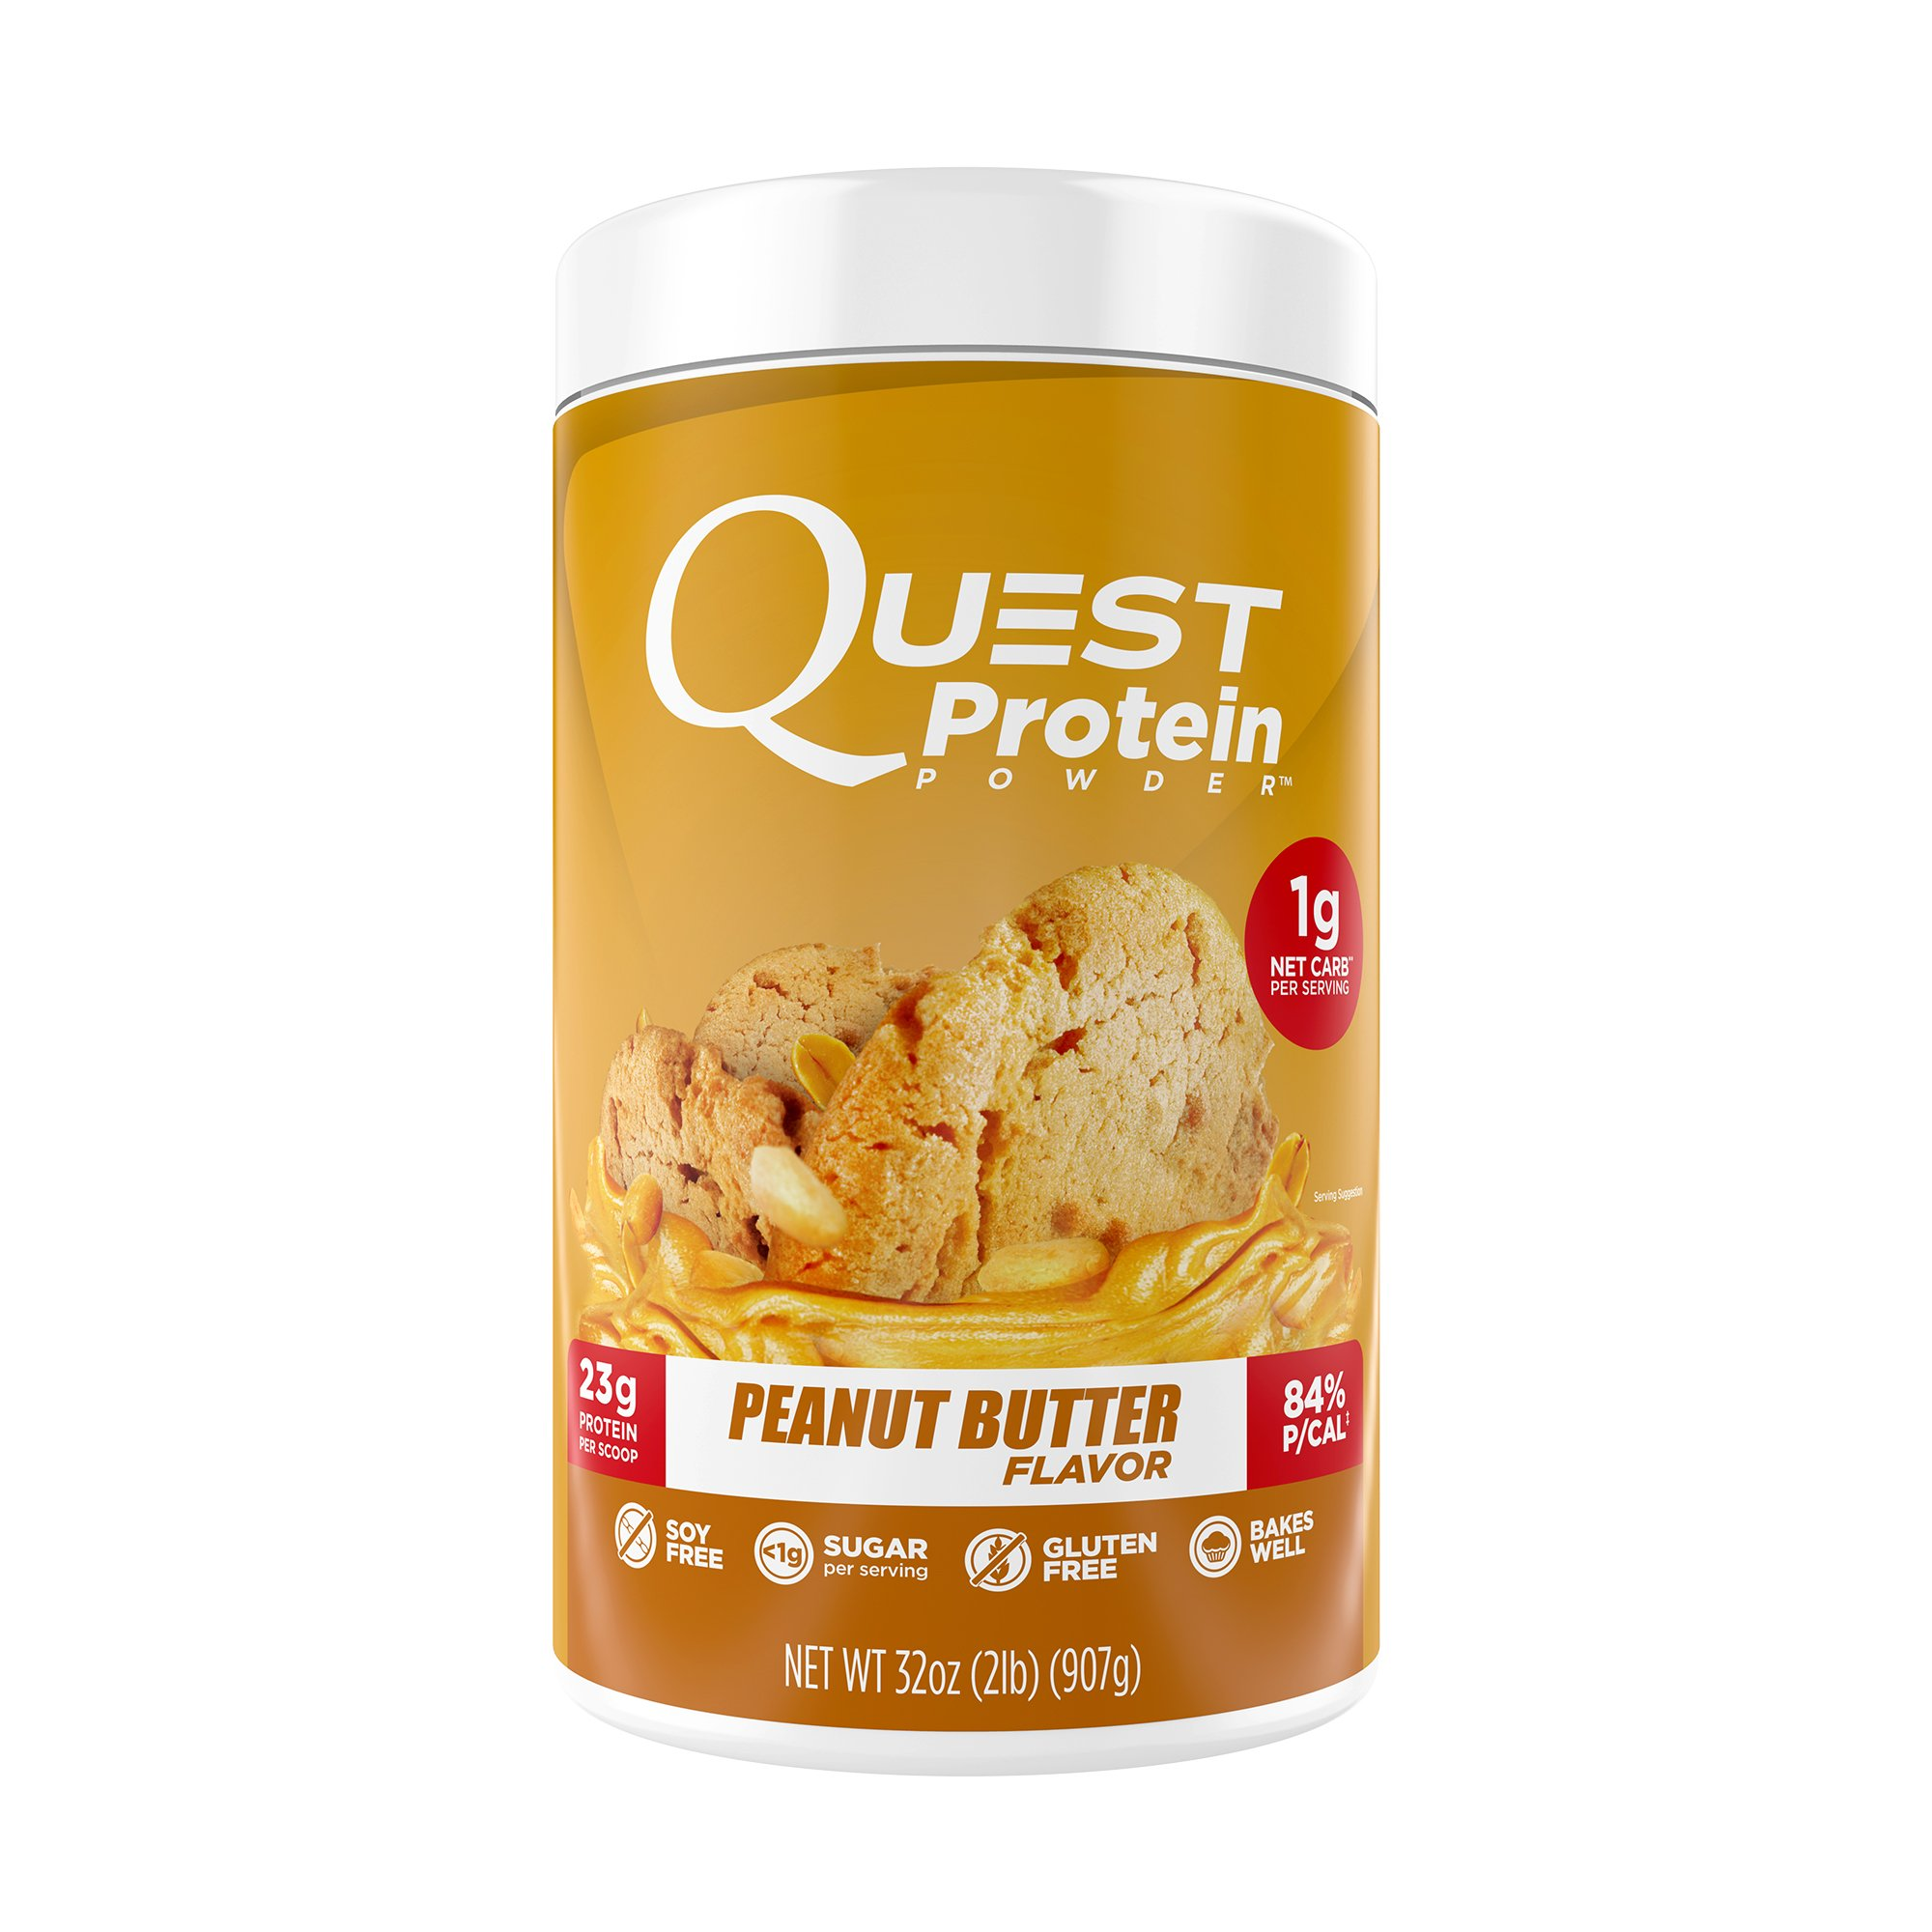 Quest Nutrition Protein Powder, Peanut Butter, 23g Protein, 0g Net Carbs, 84% P/Cals, 2lb Tub, High Protein, Low Carb, Gluten Free, Soy Free, Packaging May Vary